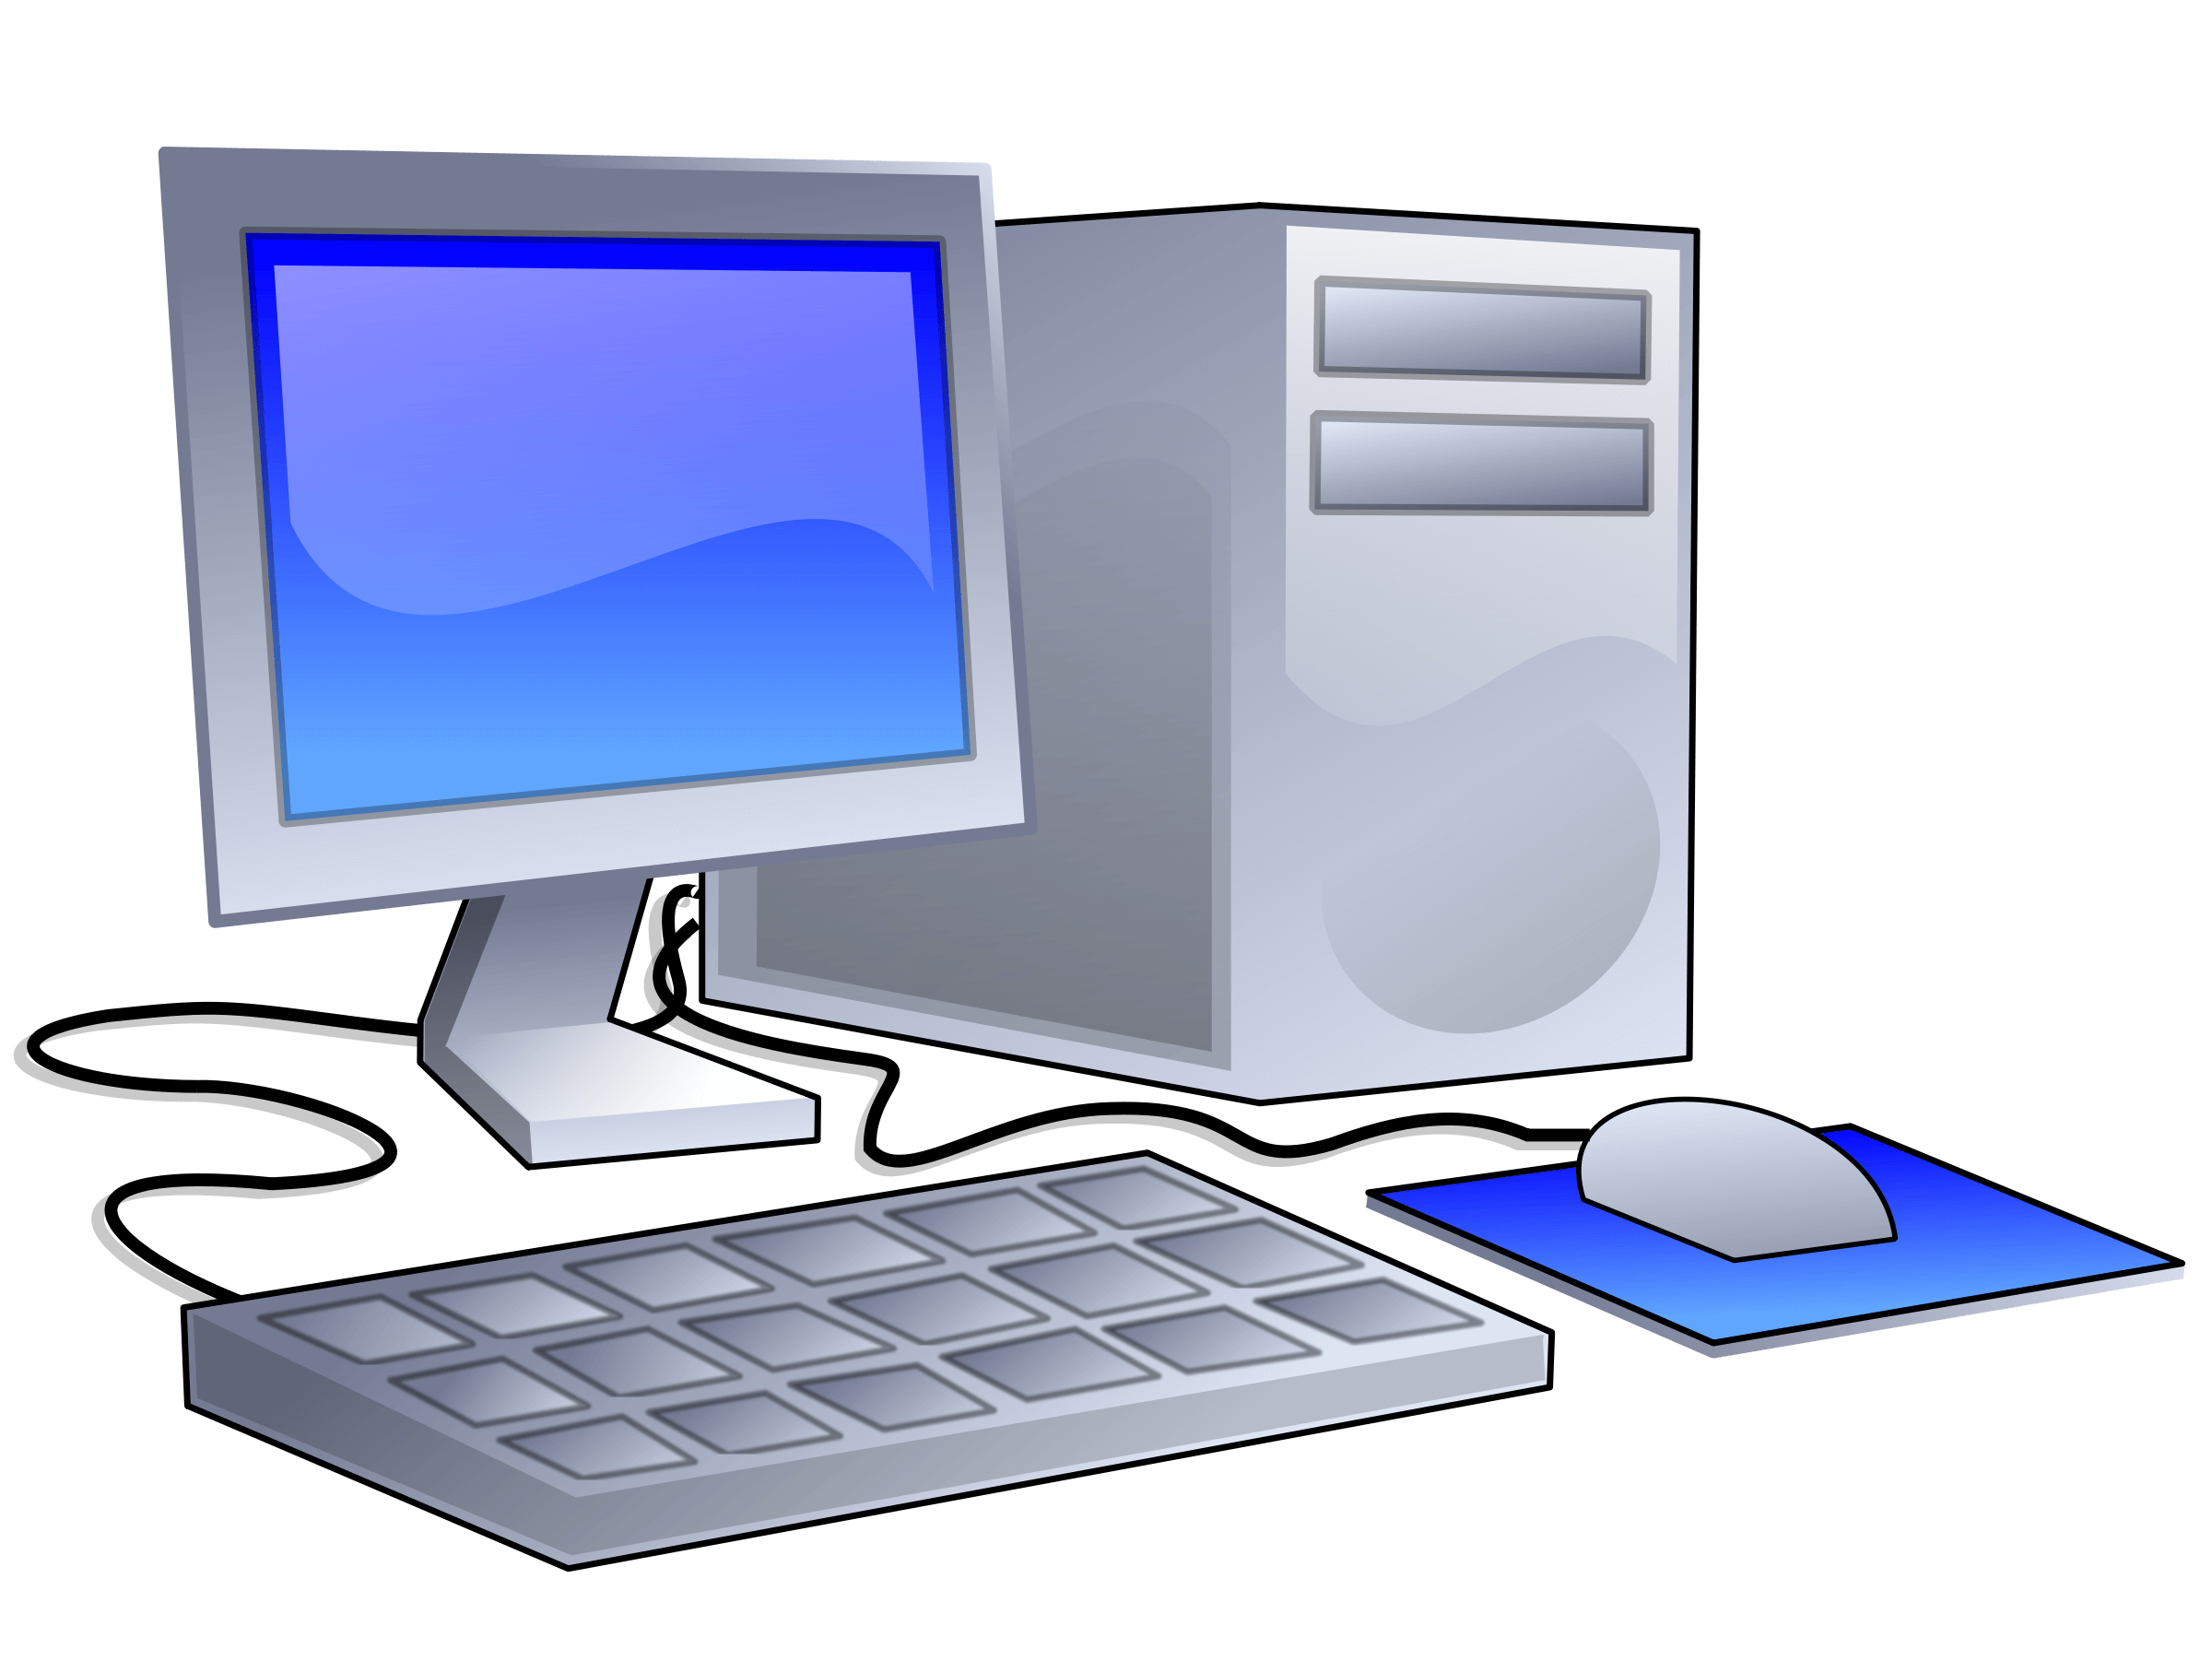 Computer clipart. Images free download in